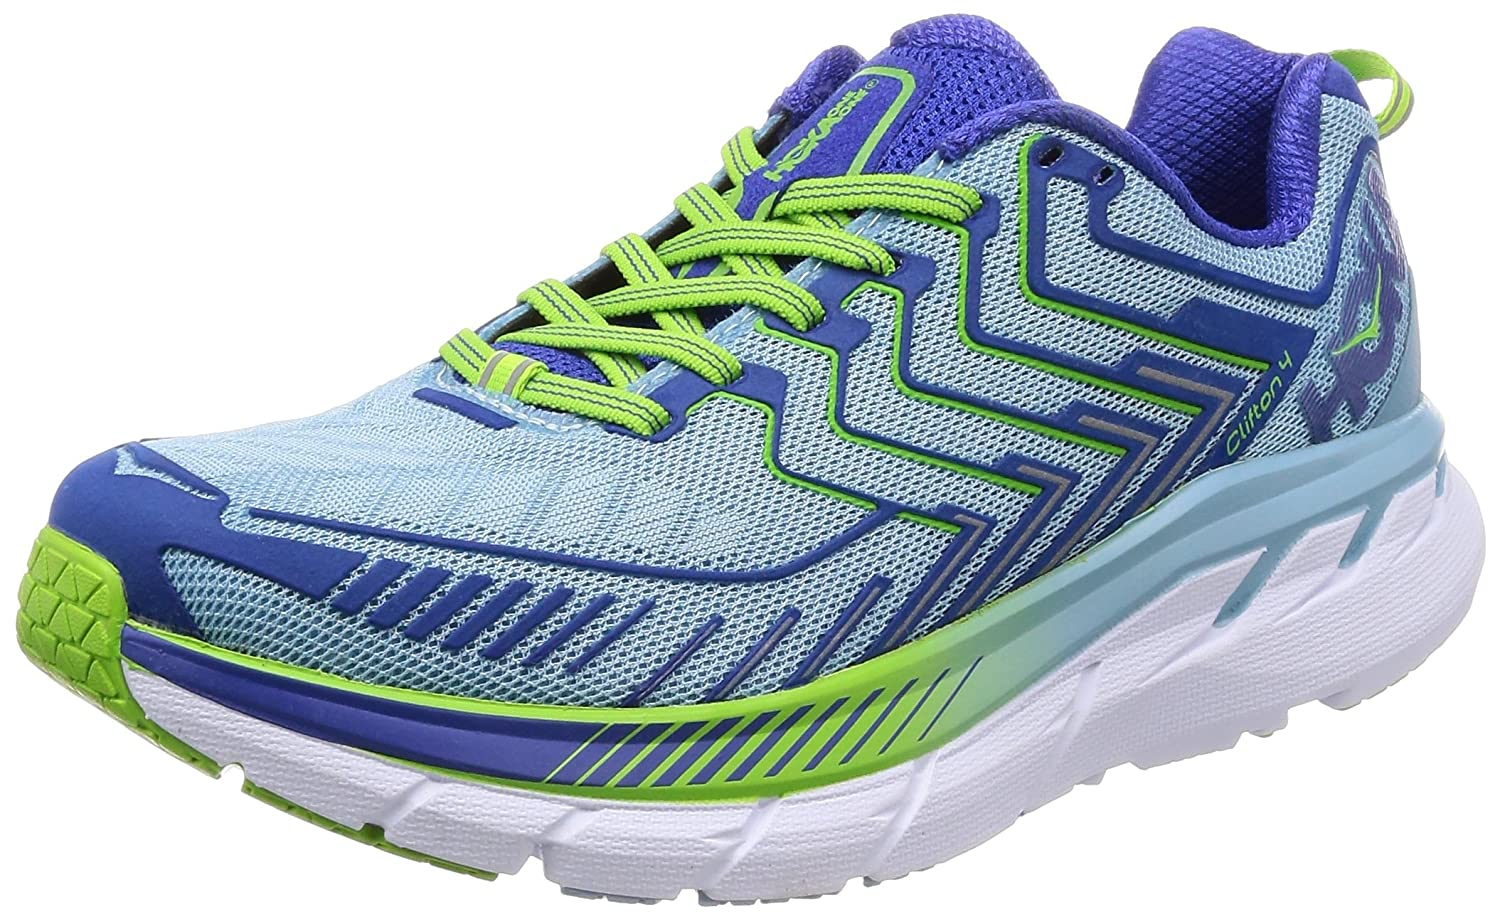 Sky bluee Surf the Web Hoka ONE ONE W Clifton 4 (1016724)